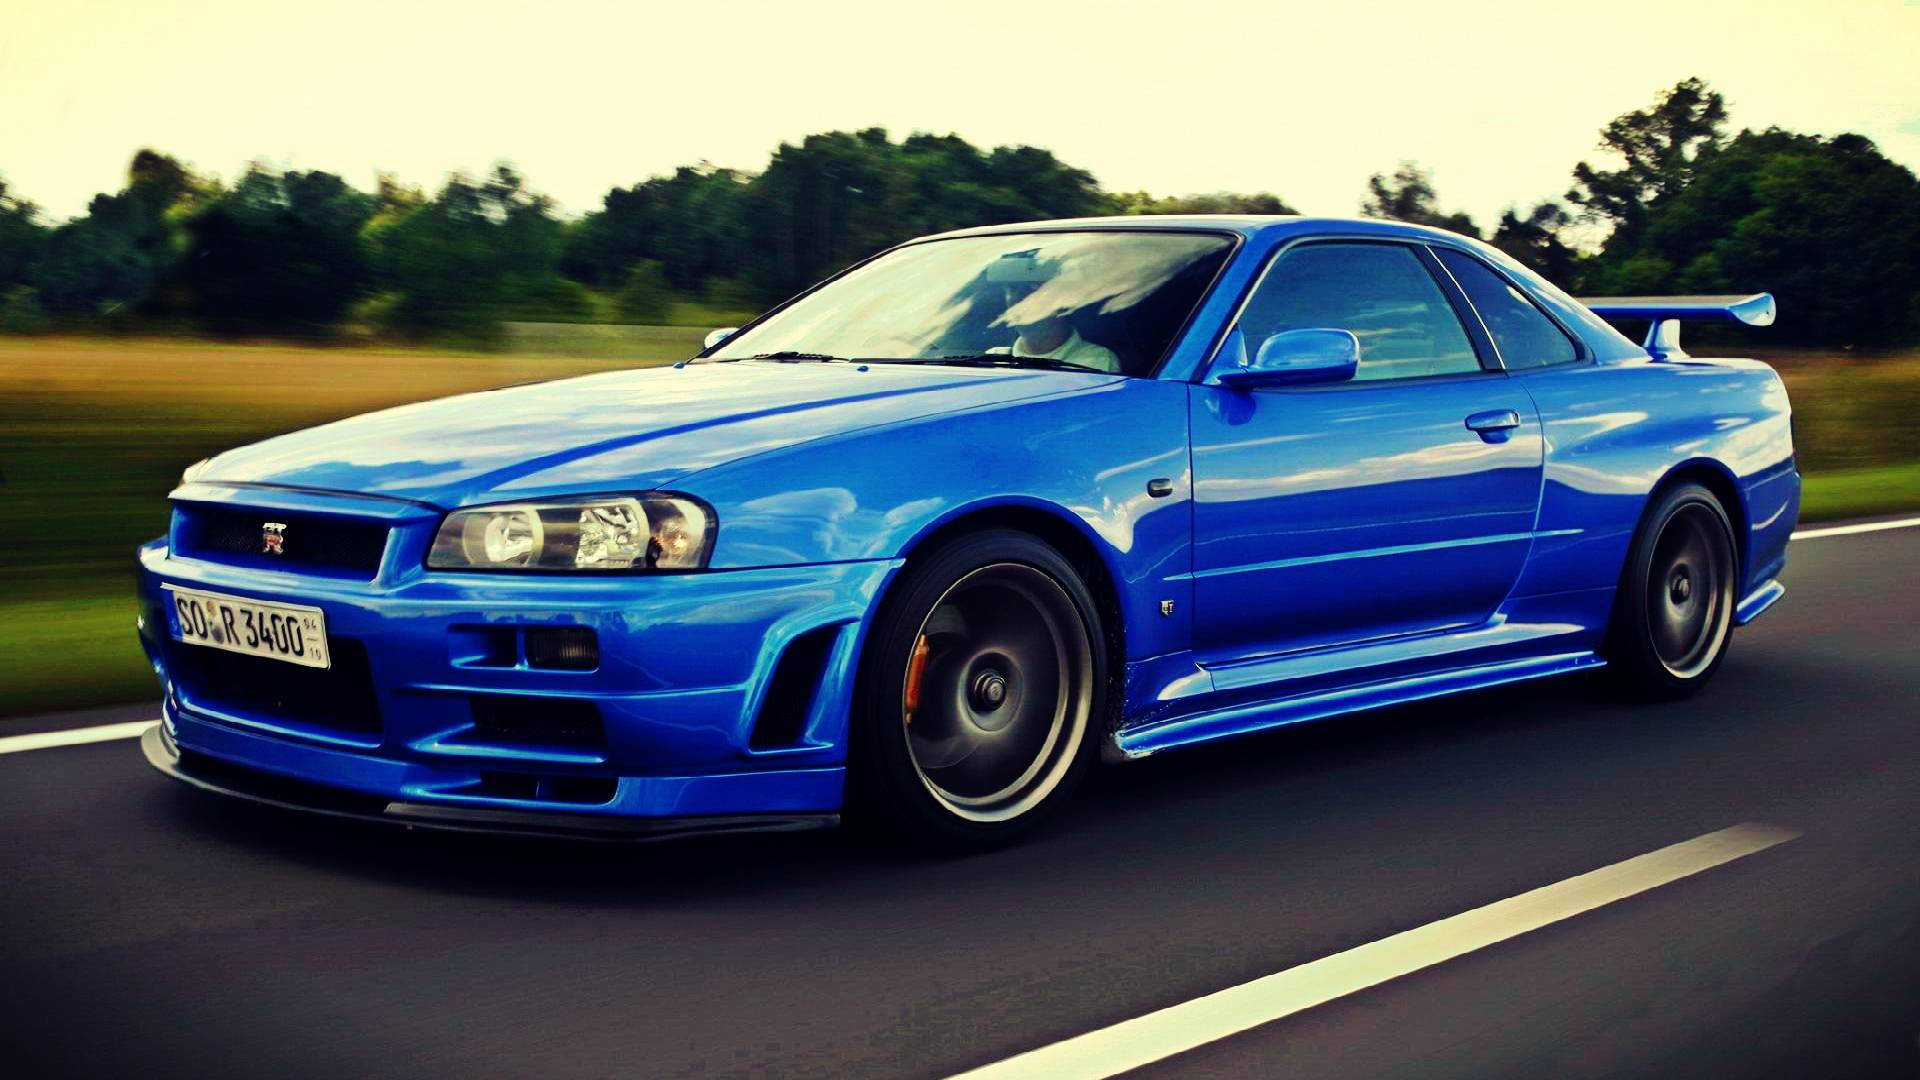 Free Download 2016 Skyline Gtr Wallpapers 1920x1080 For Your